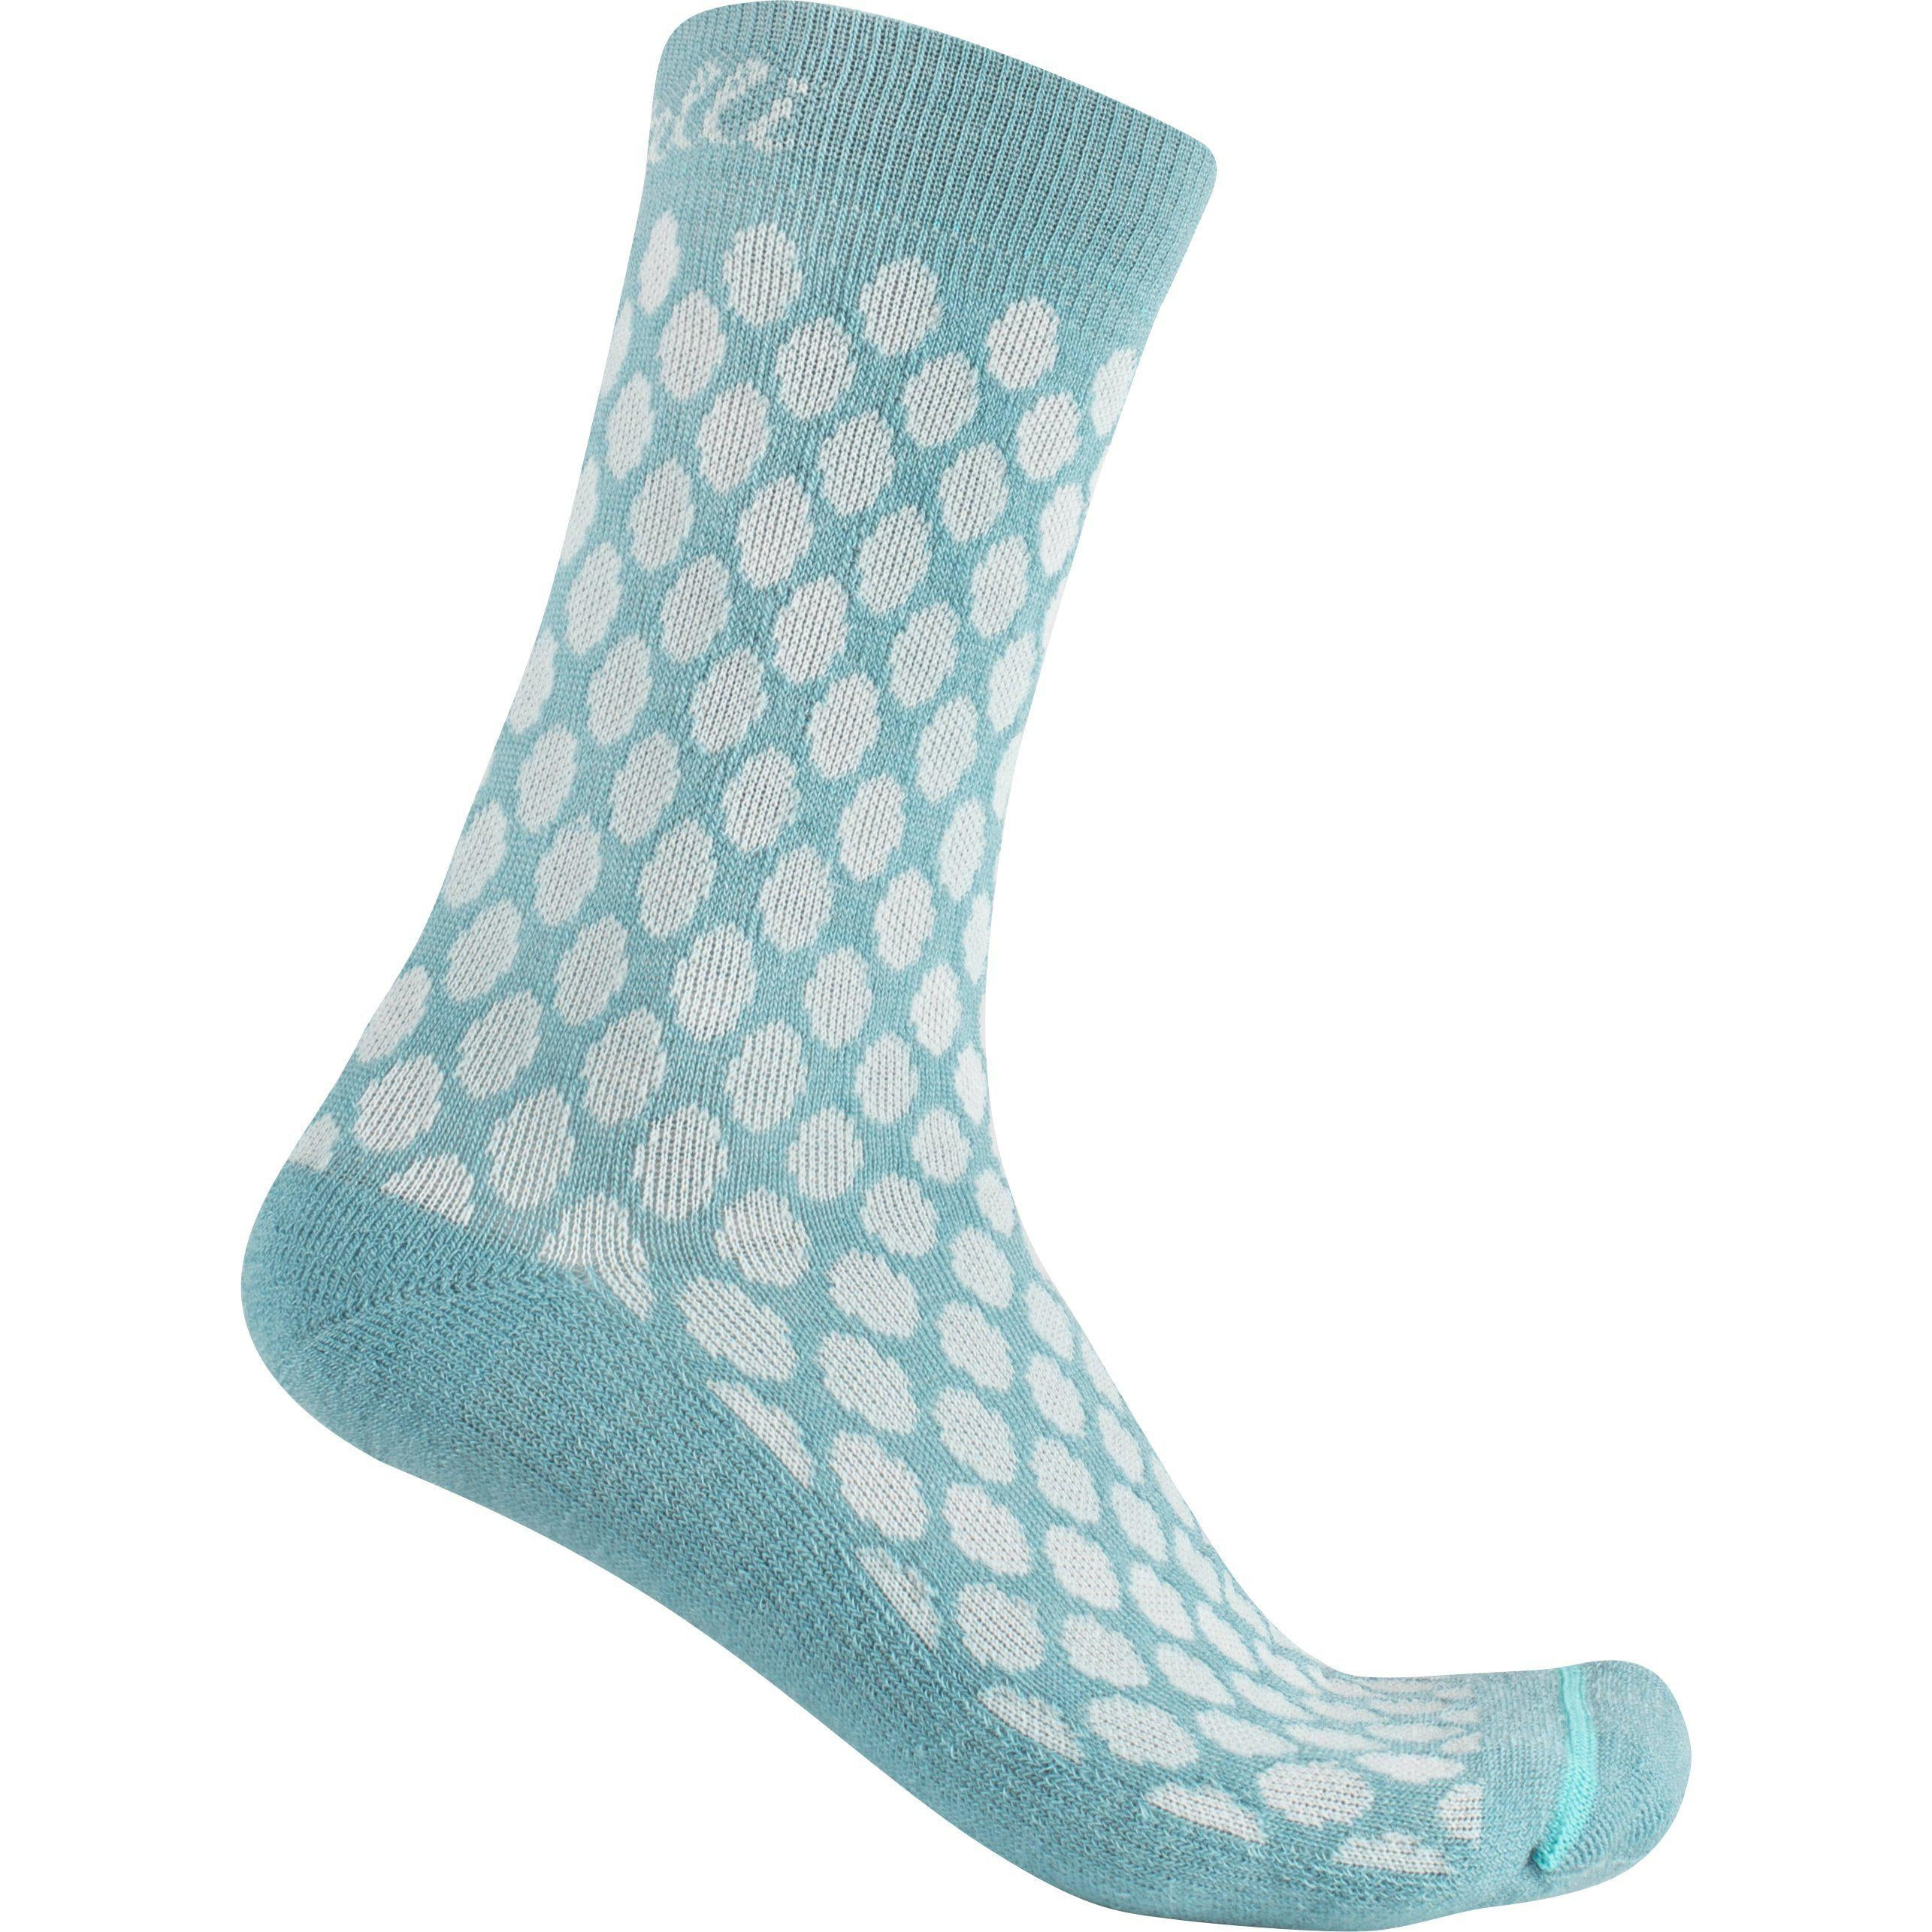 Castelli-Castelli Sfida 13 Women's Socks-Celeste-S/M-CS1754647909-saddleback-elite-performance-cycling